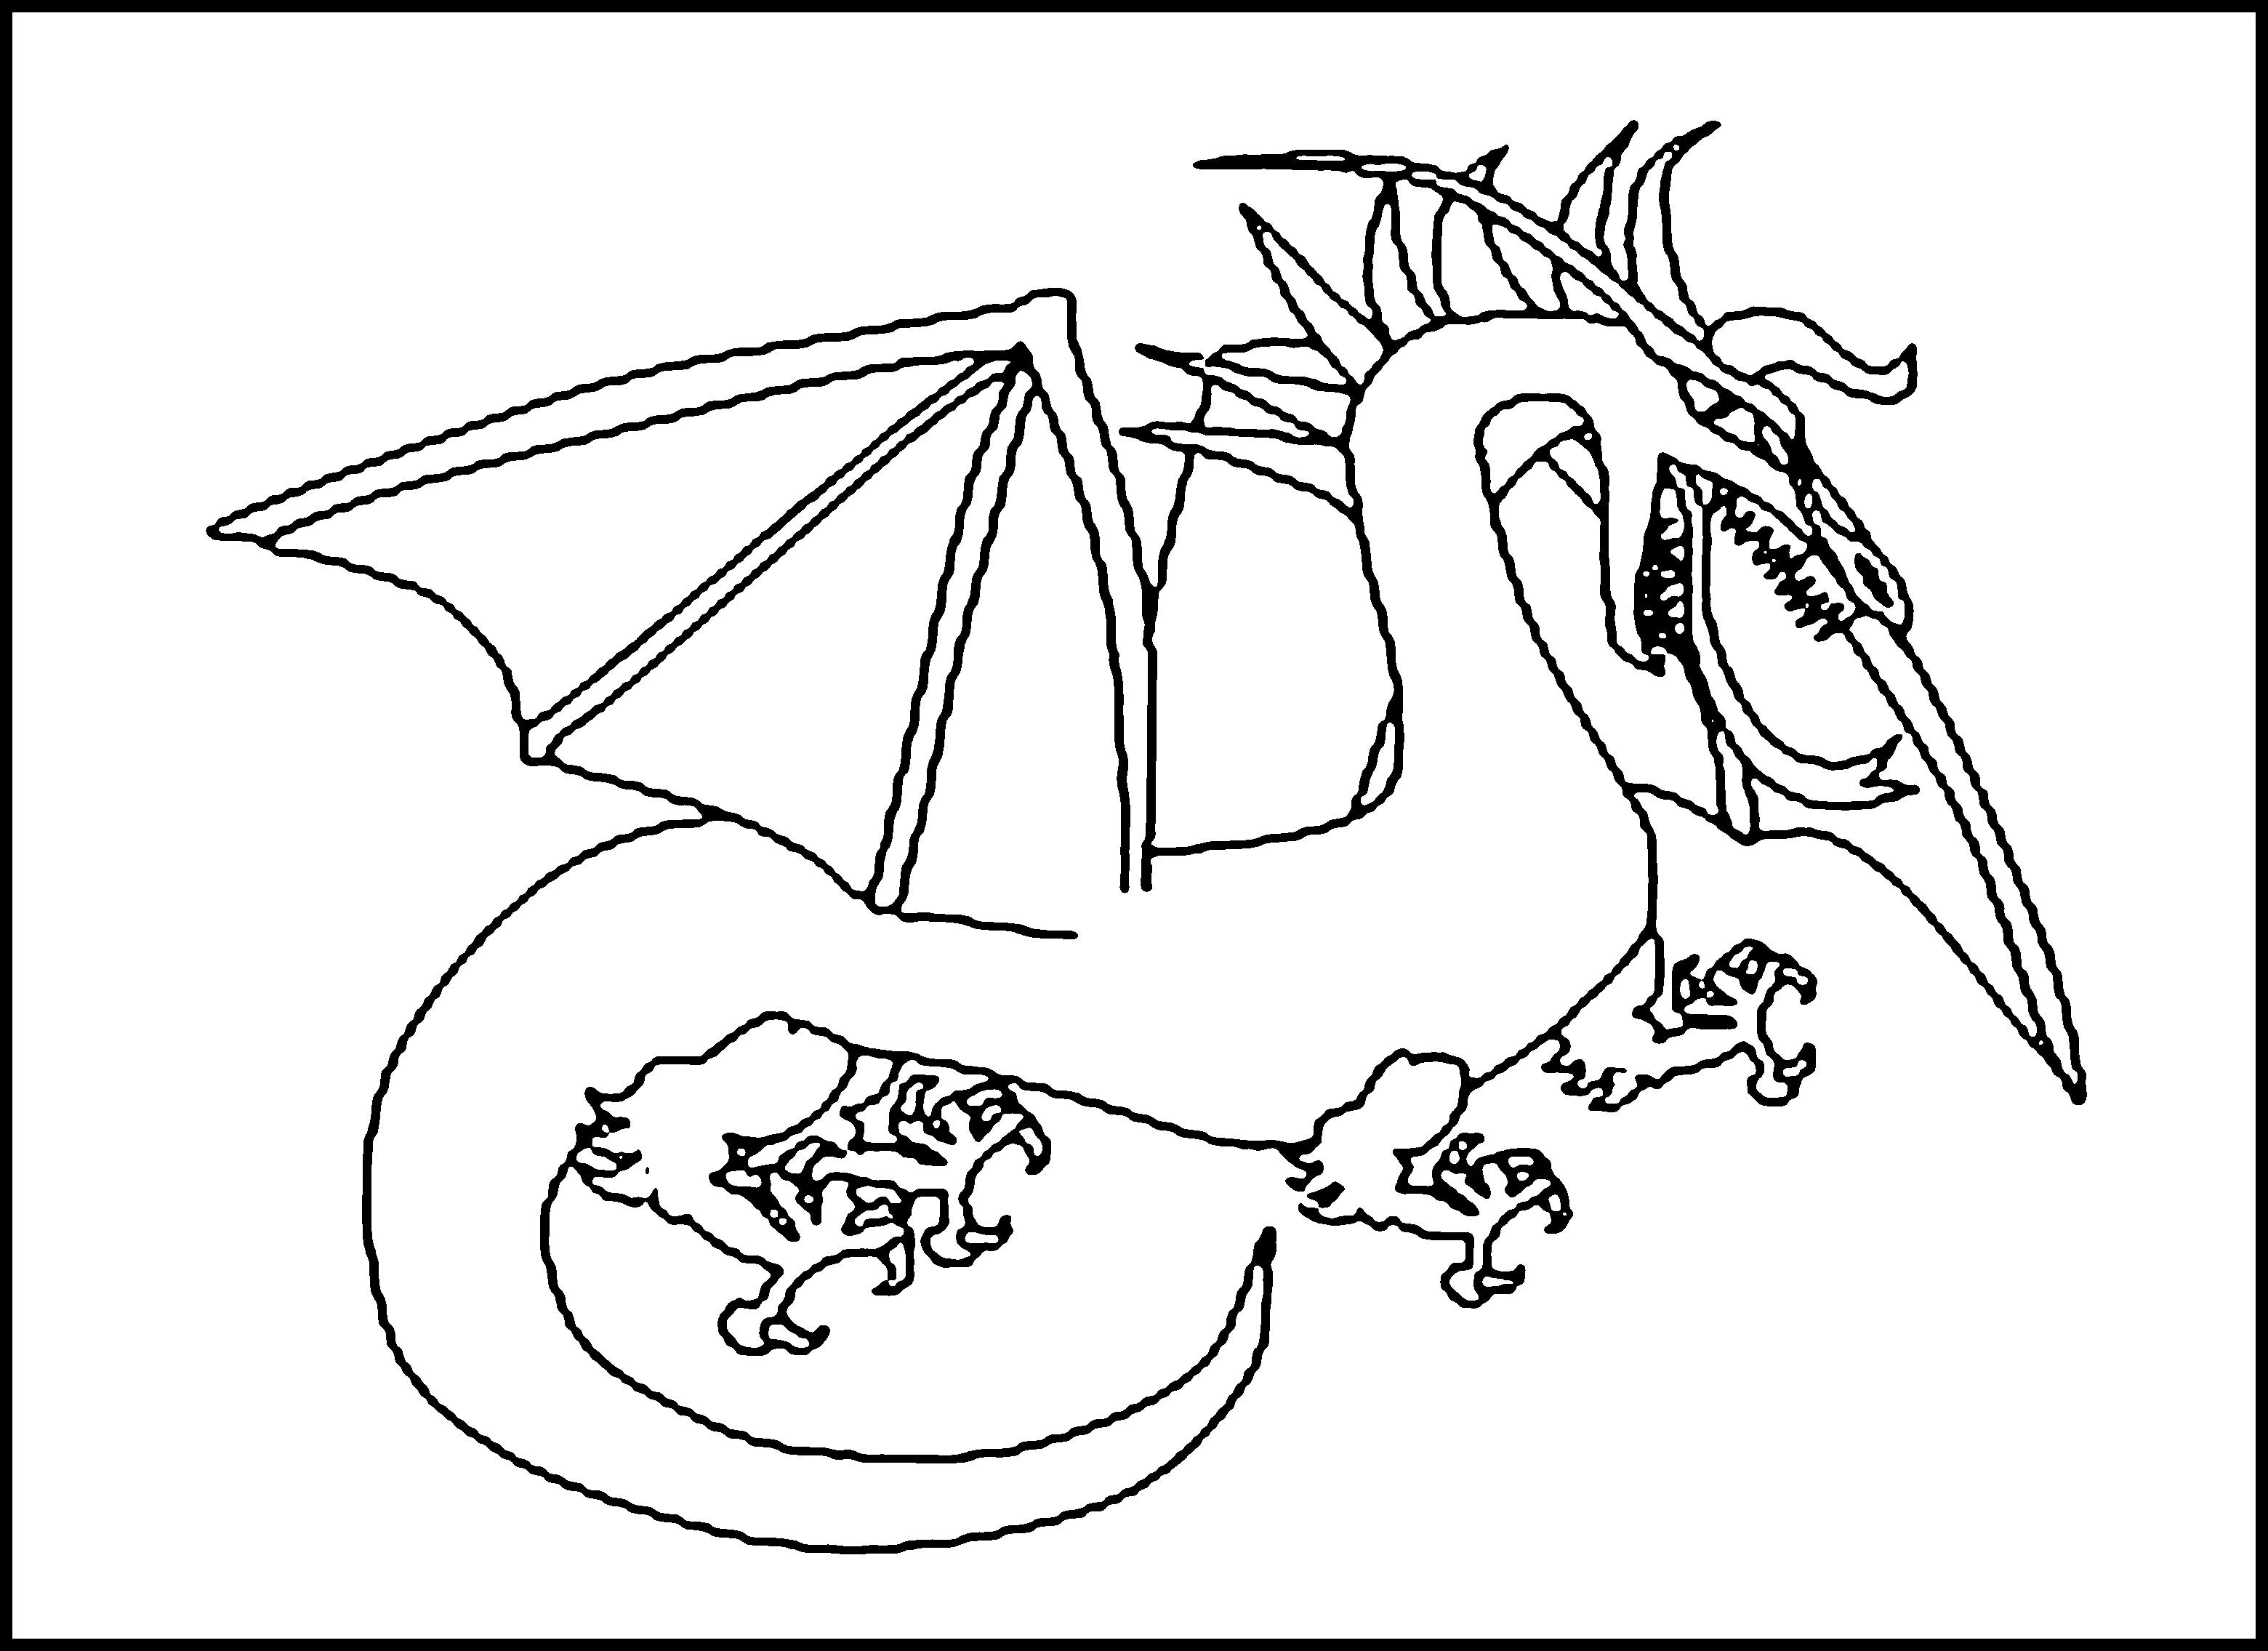 Hobbit clipart coloring page Printable Coloring Pages Pages Coloring